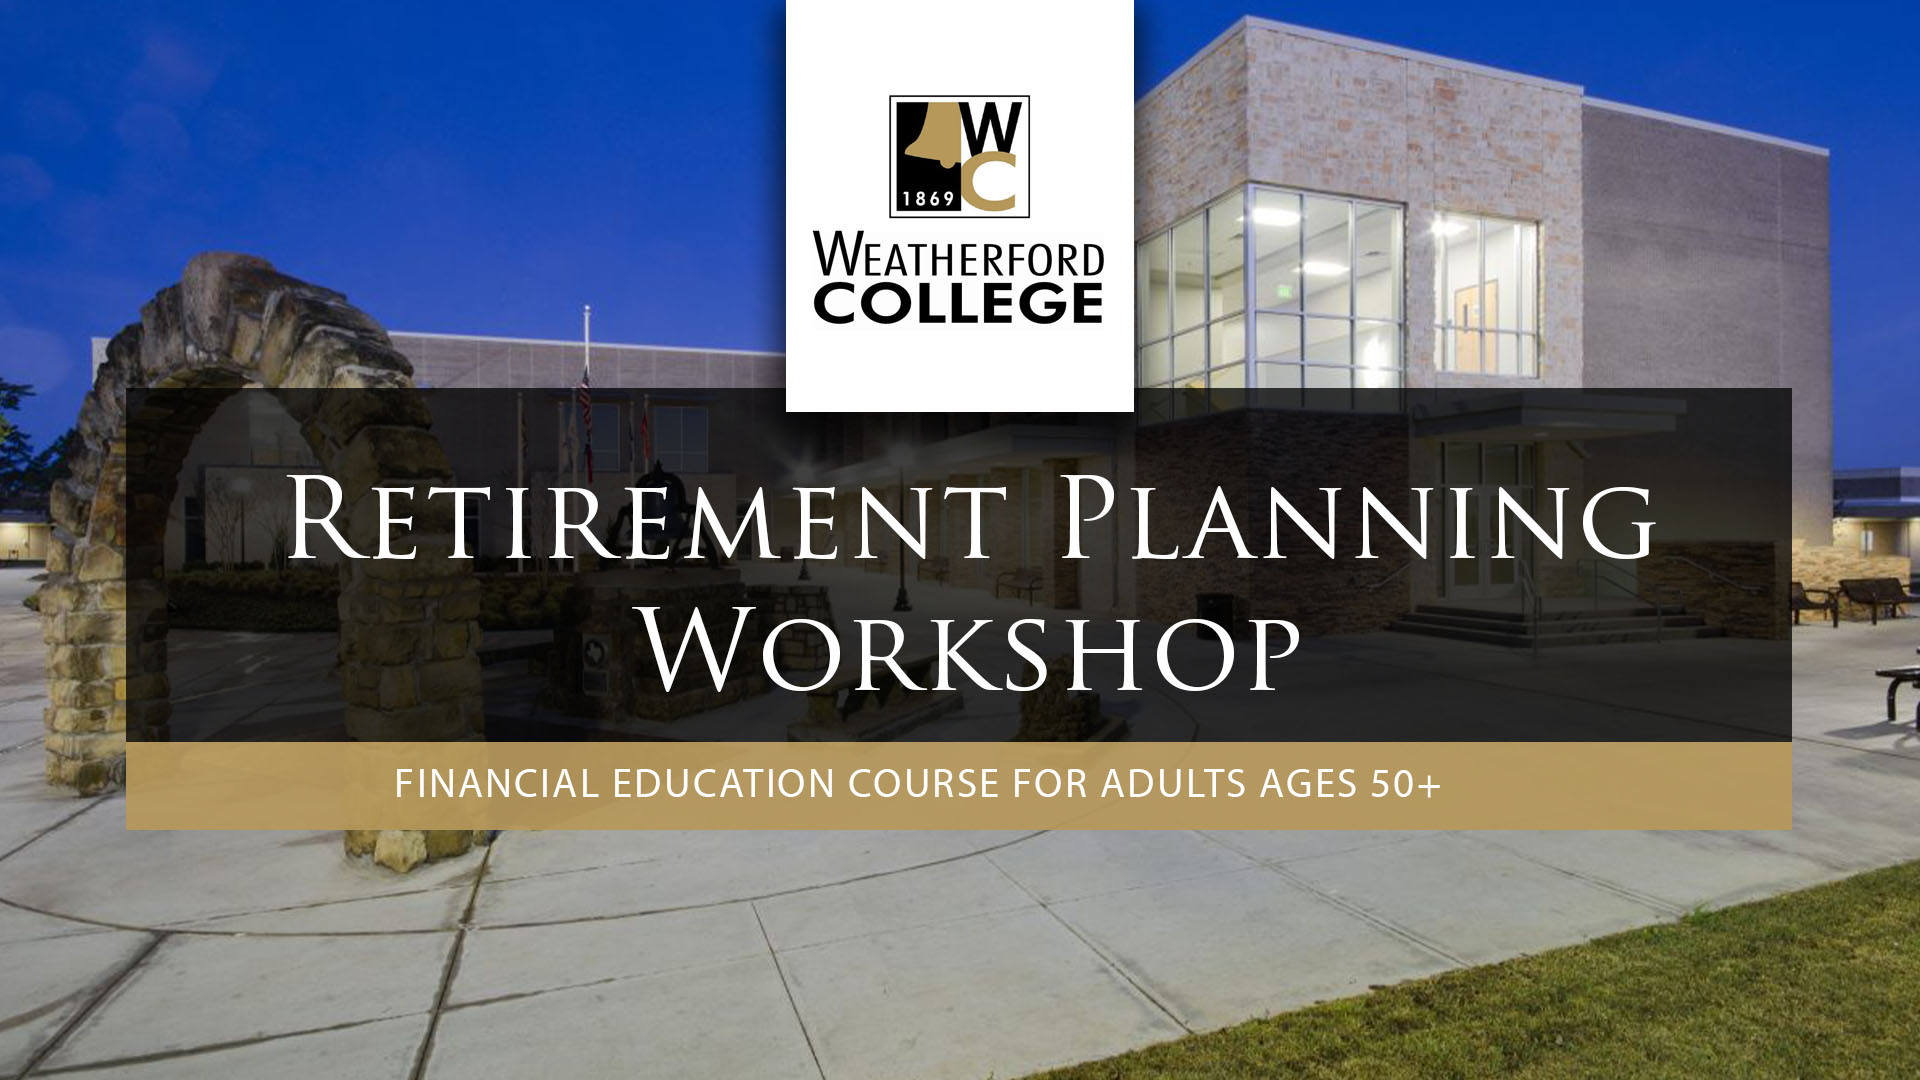 Strittmatter Wealth Management Group Retirement Planning Workshop Weatherford College Weatherford, Texas Financial Education Courses Seminars